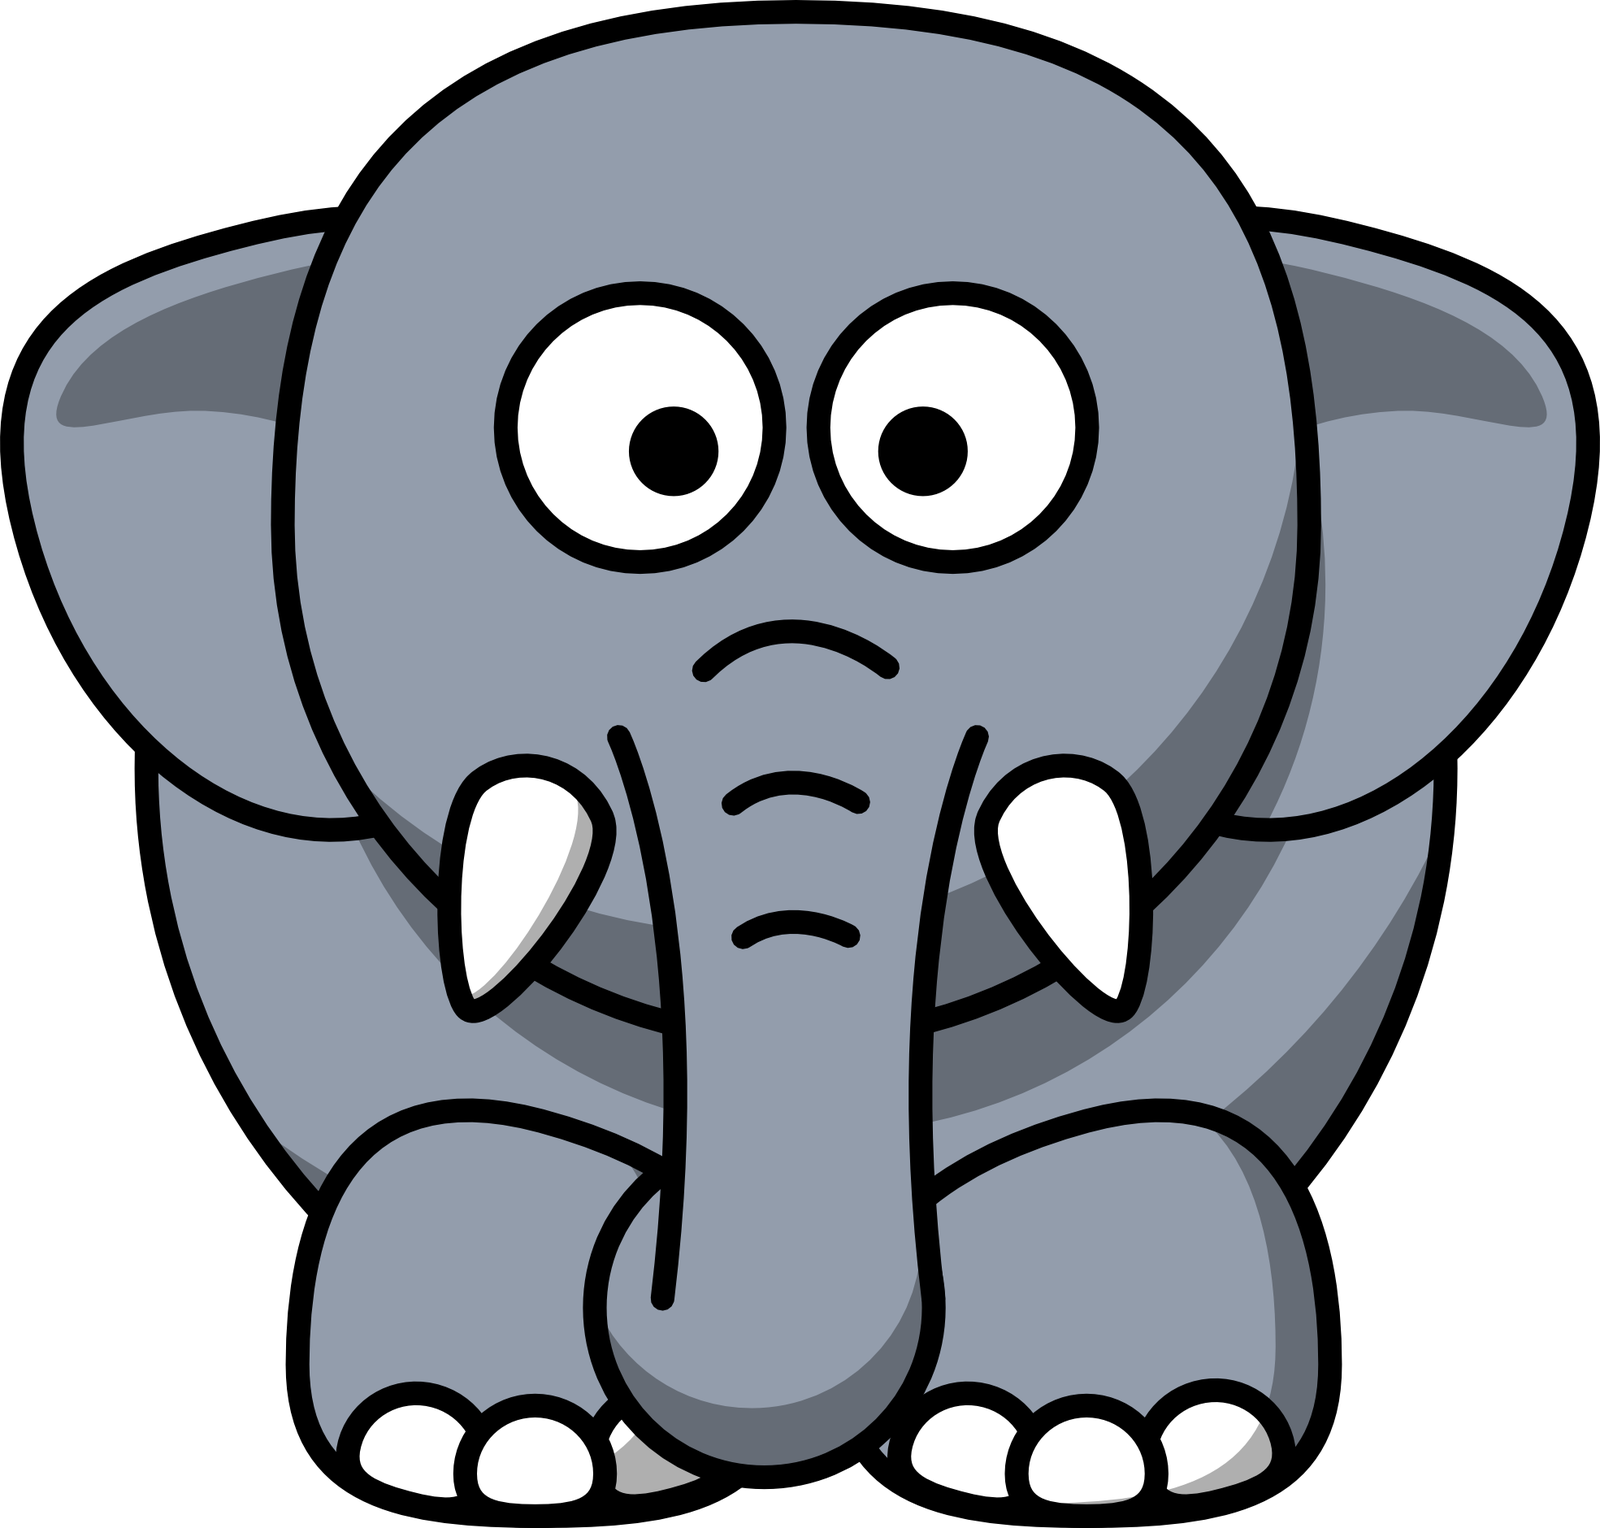 Comptine anglais : what a nose! (the elephant goes)